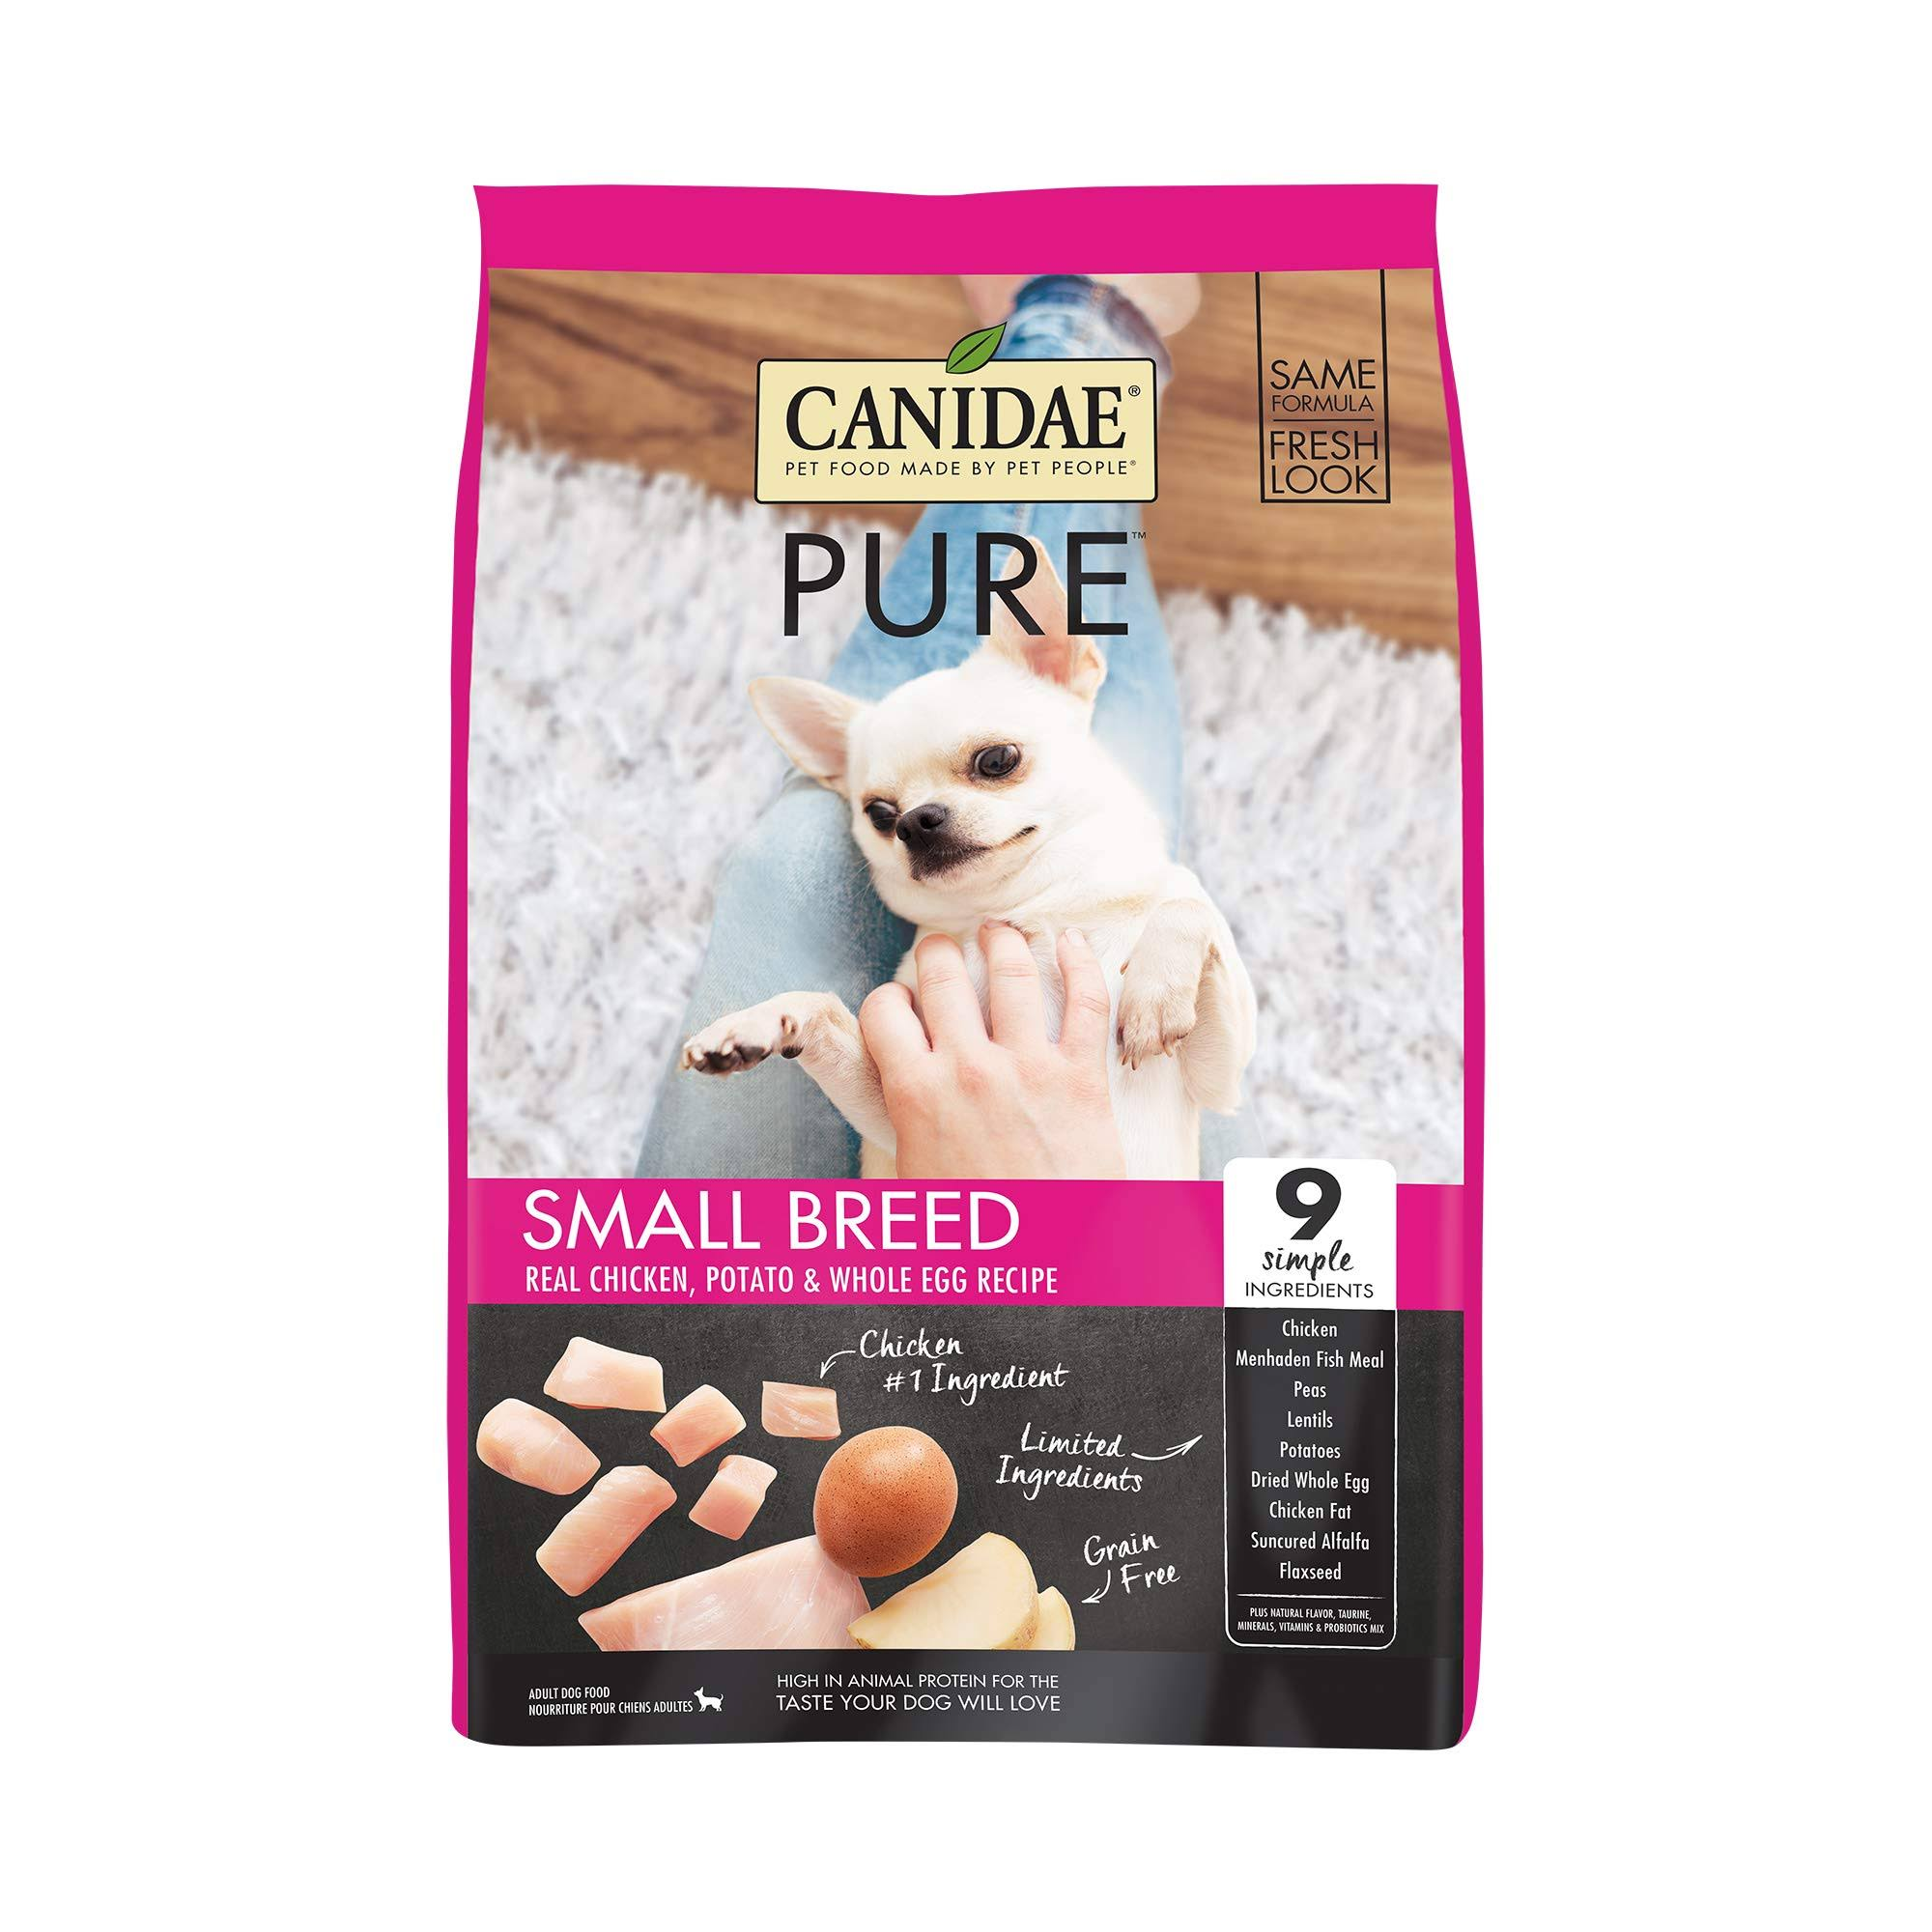 Canidae Grain Free Pure Dry Dog Food - Fresh Chicken for Small Breeds, 12lbs